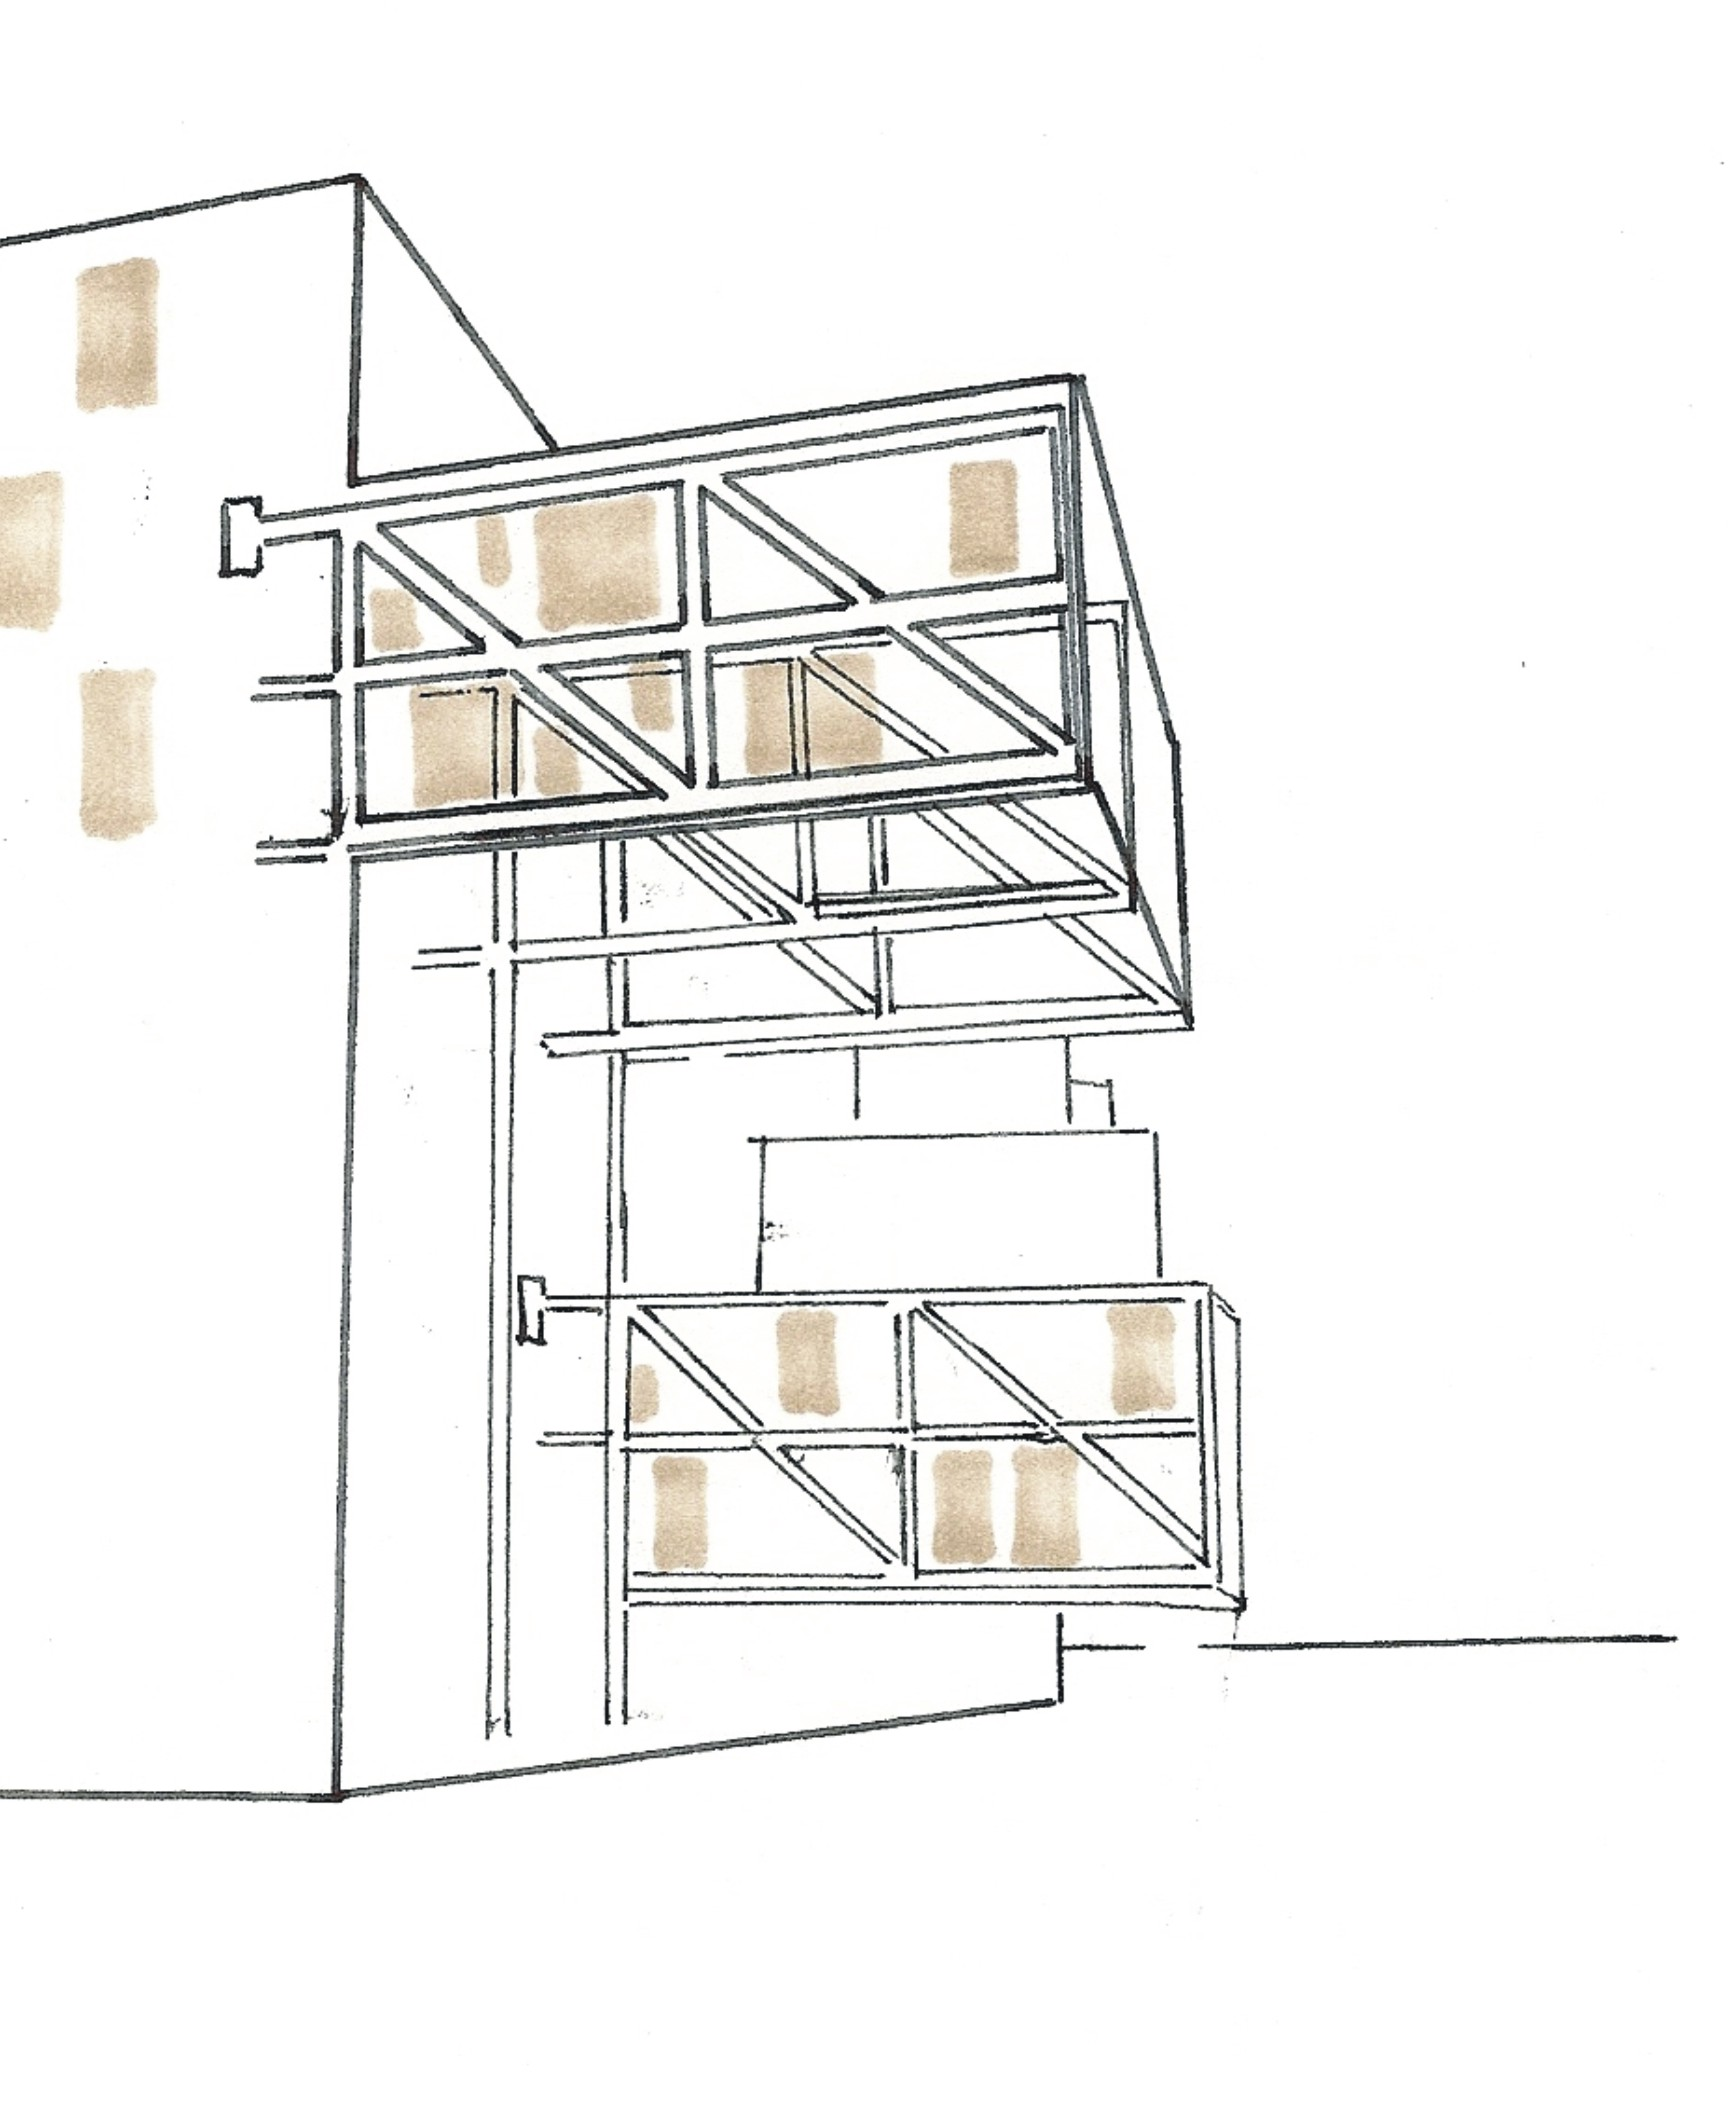 Buildings on pinterest steven holl beijing and netherlands for Apartment structural plans